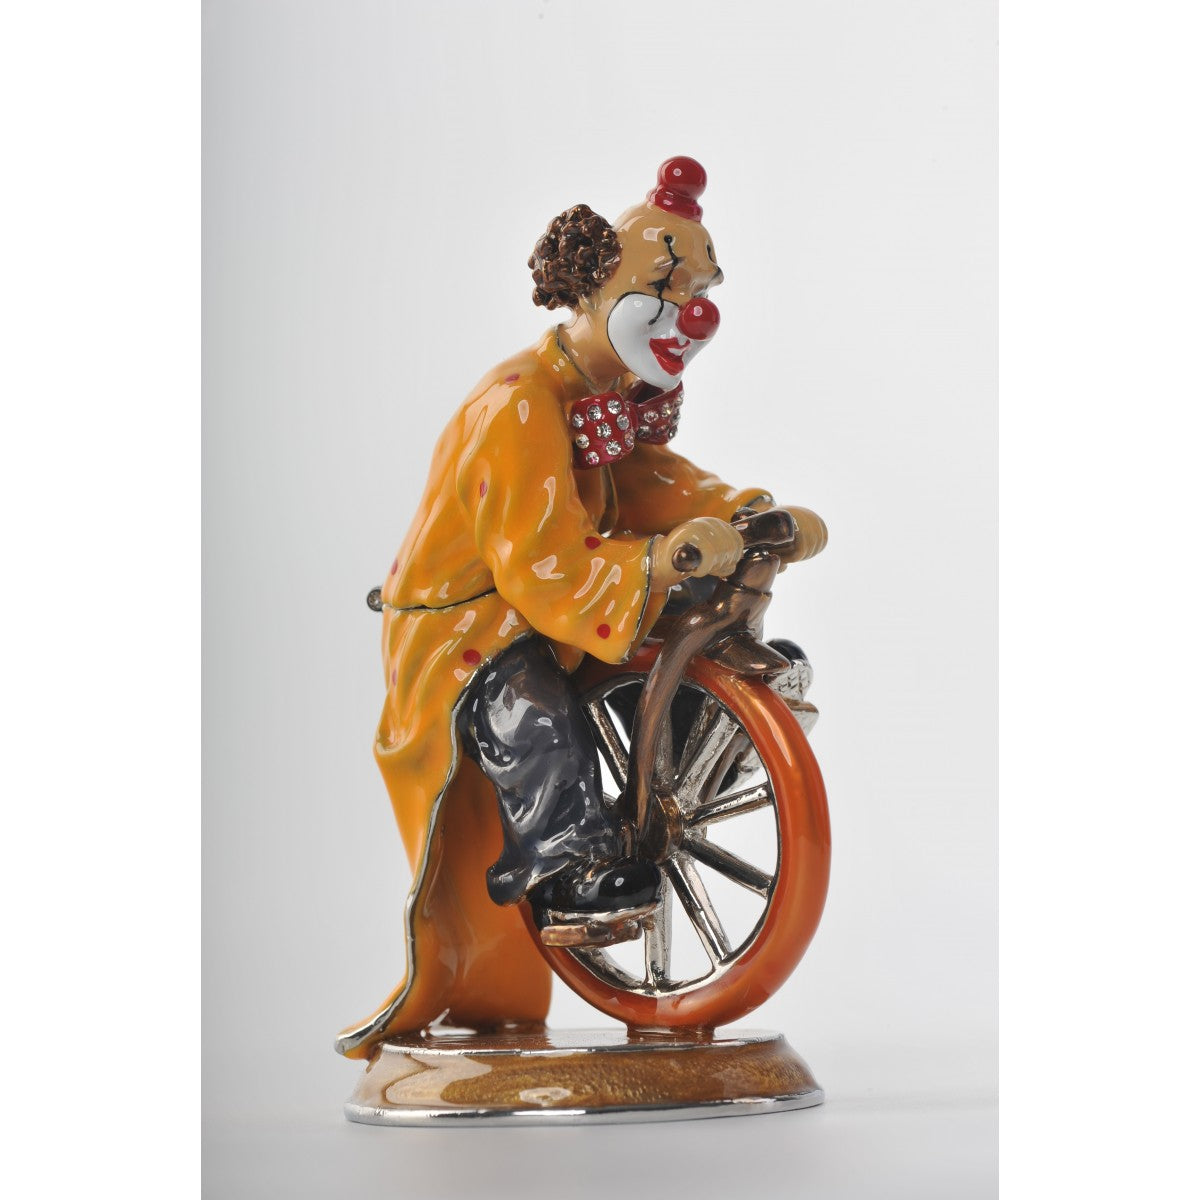 Circus Clown riding the bike by Keren Kopal